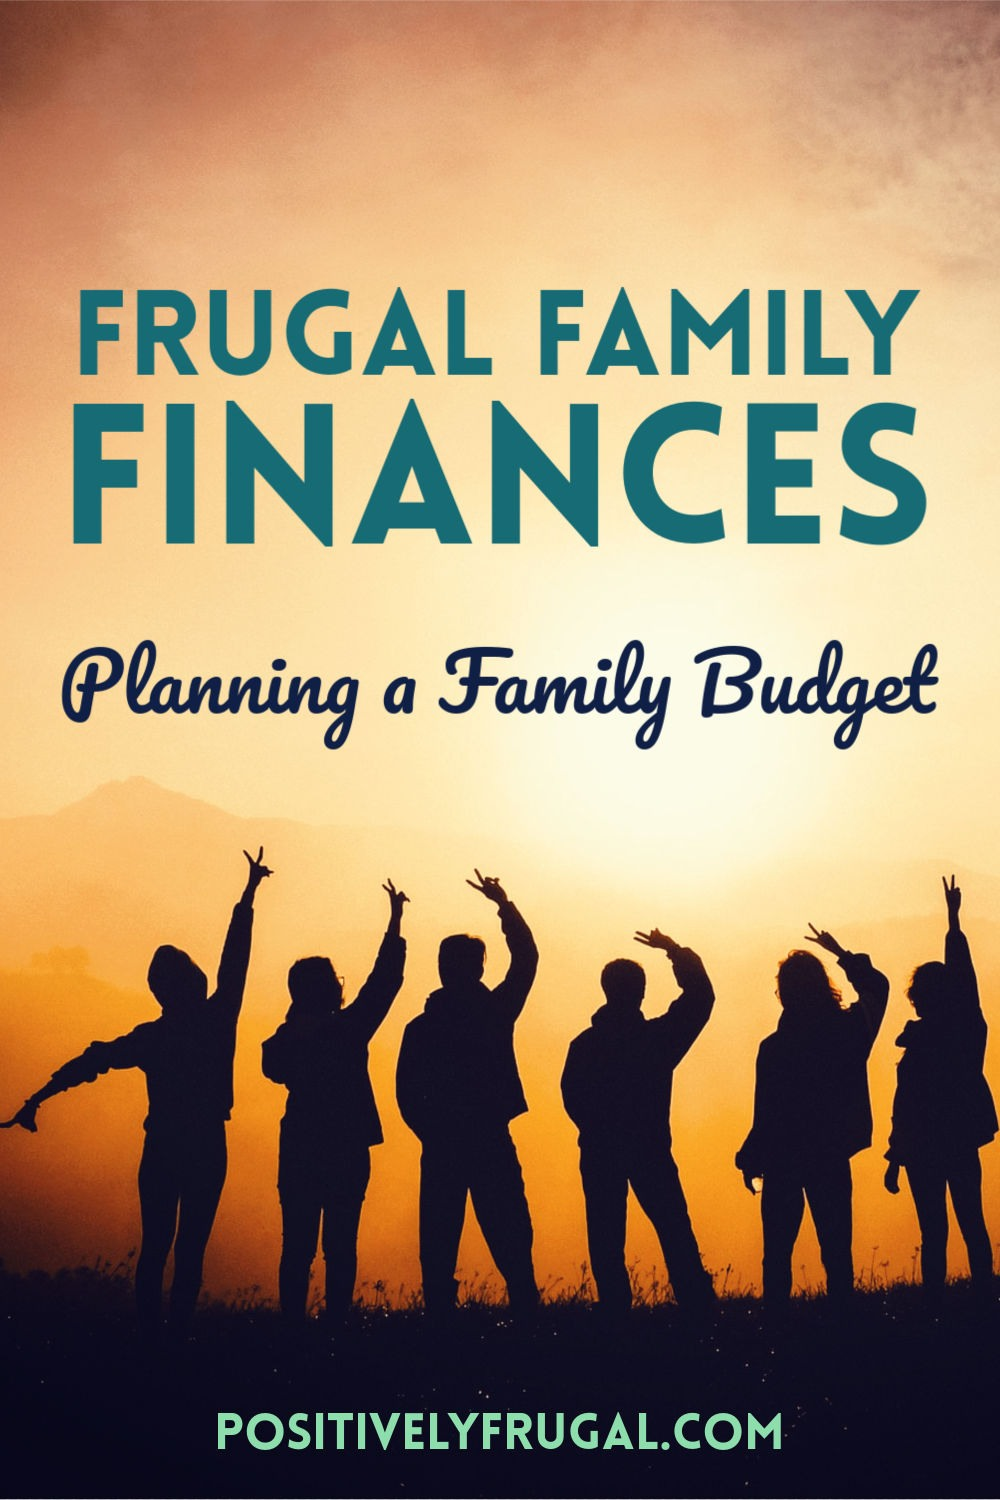 Frugal Family Finances Plan Family Budget by PositivelyFrugal.com